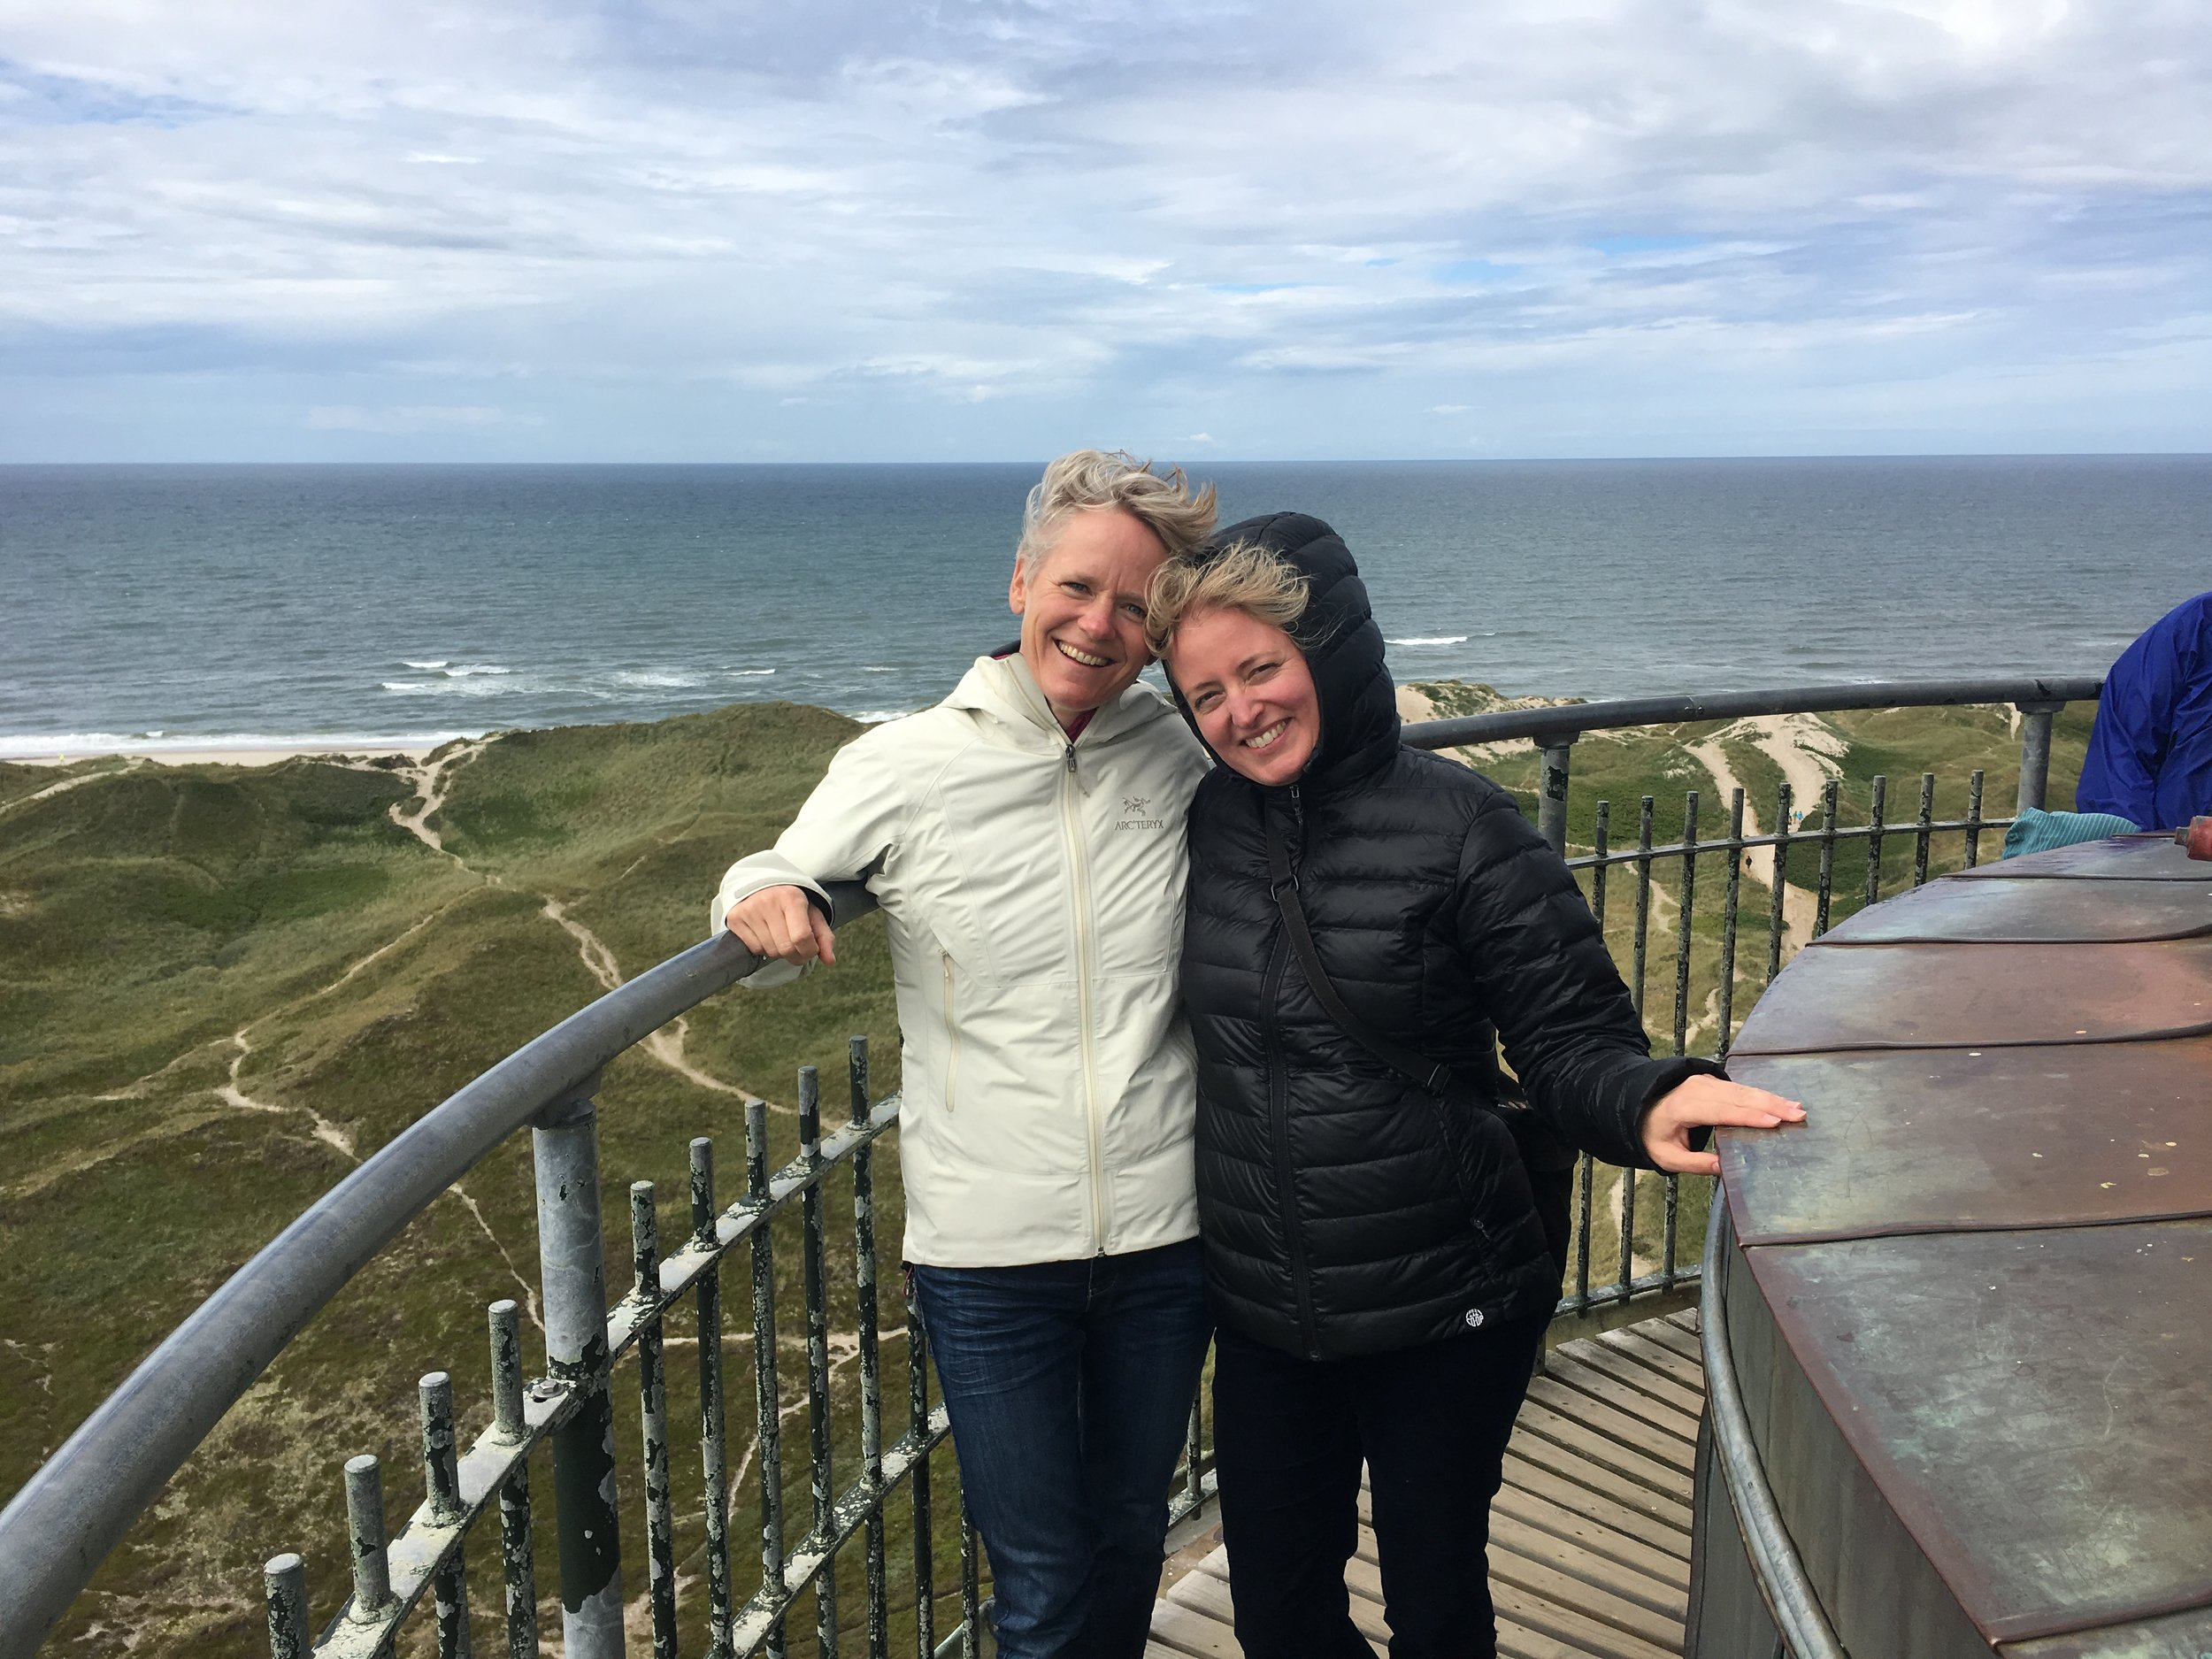 Mette and I on top of the Nørre Lyngvig (lighthouse).